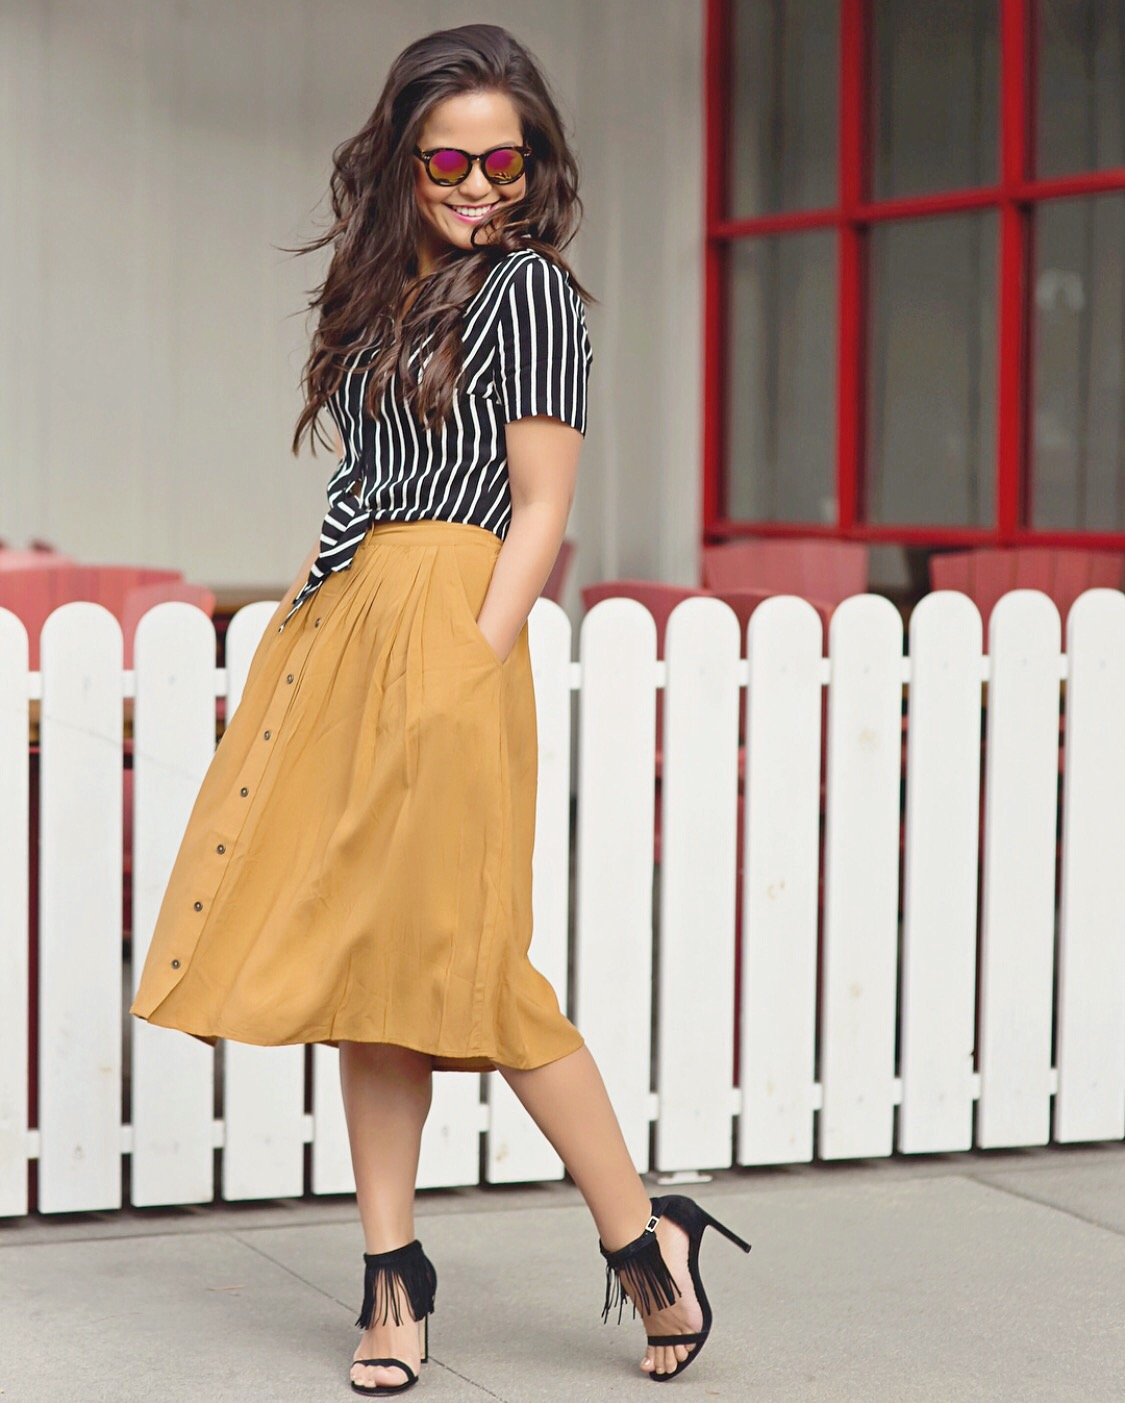 Stripes & Skirts